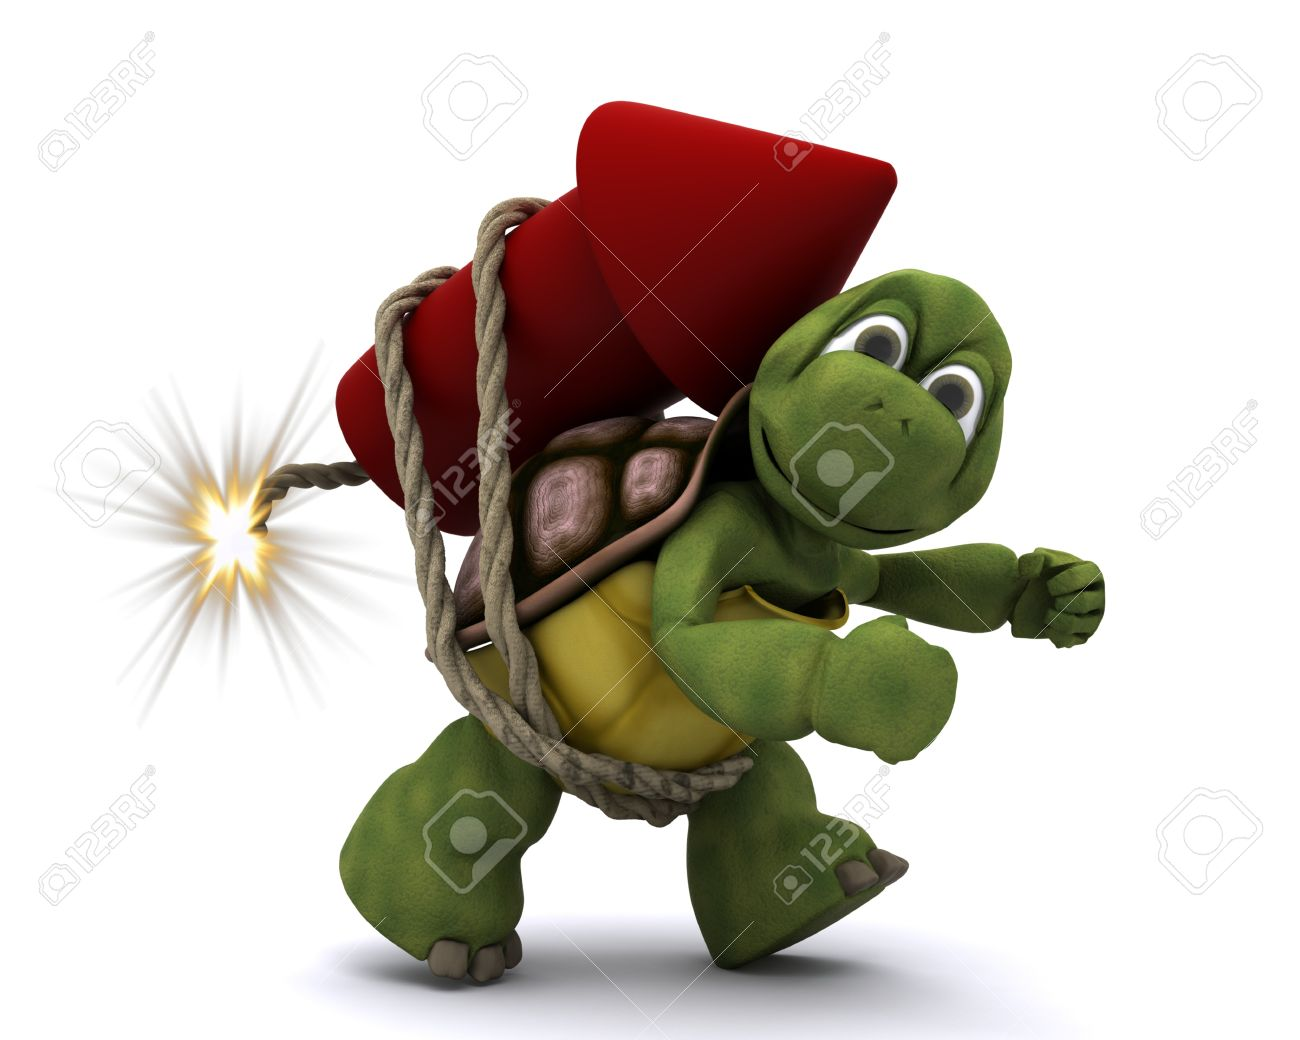 tortoise lighting. 3d Render Of Tortoise Lighting A Firework Stock Photo - 10485292 E